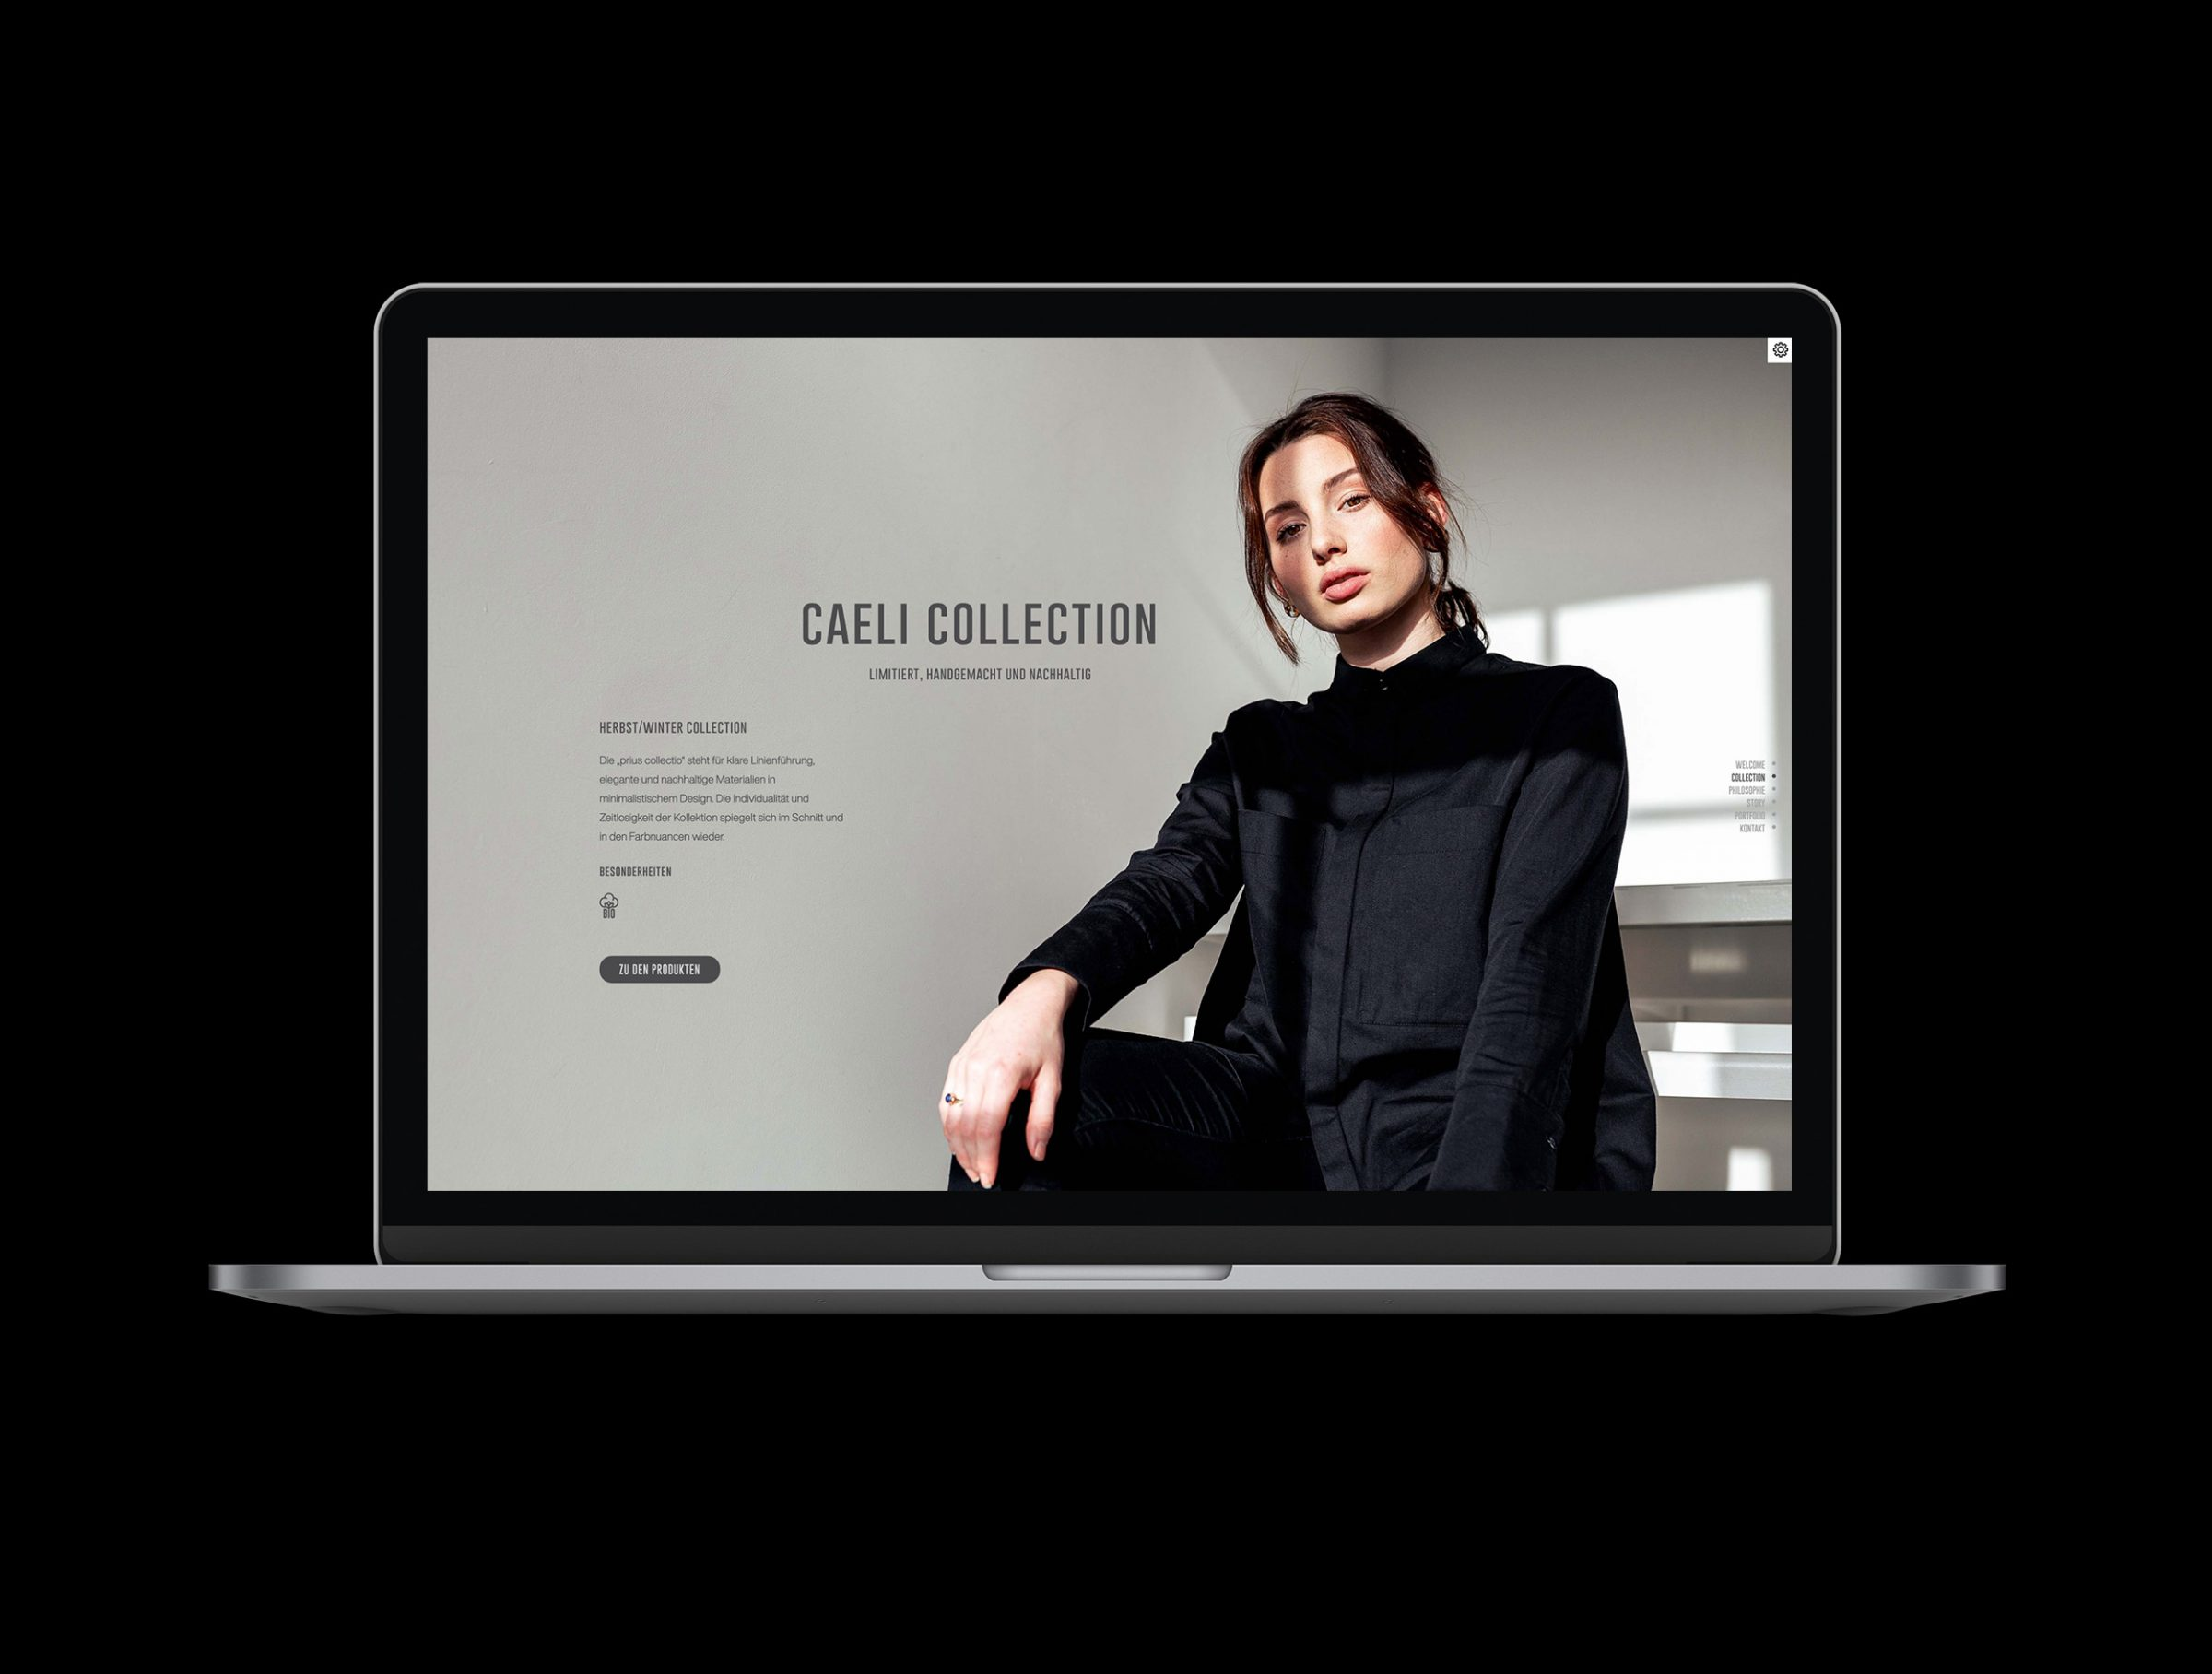 nachhaltige Mode – CAELI Design – Collection